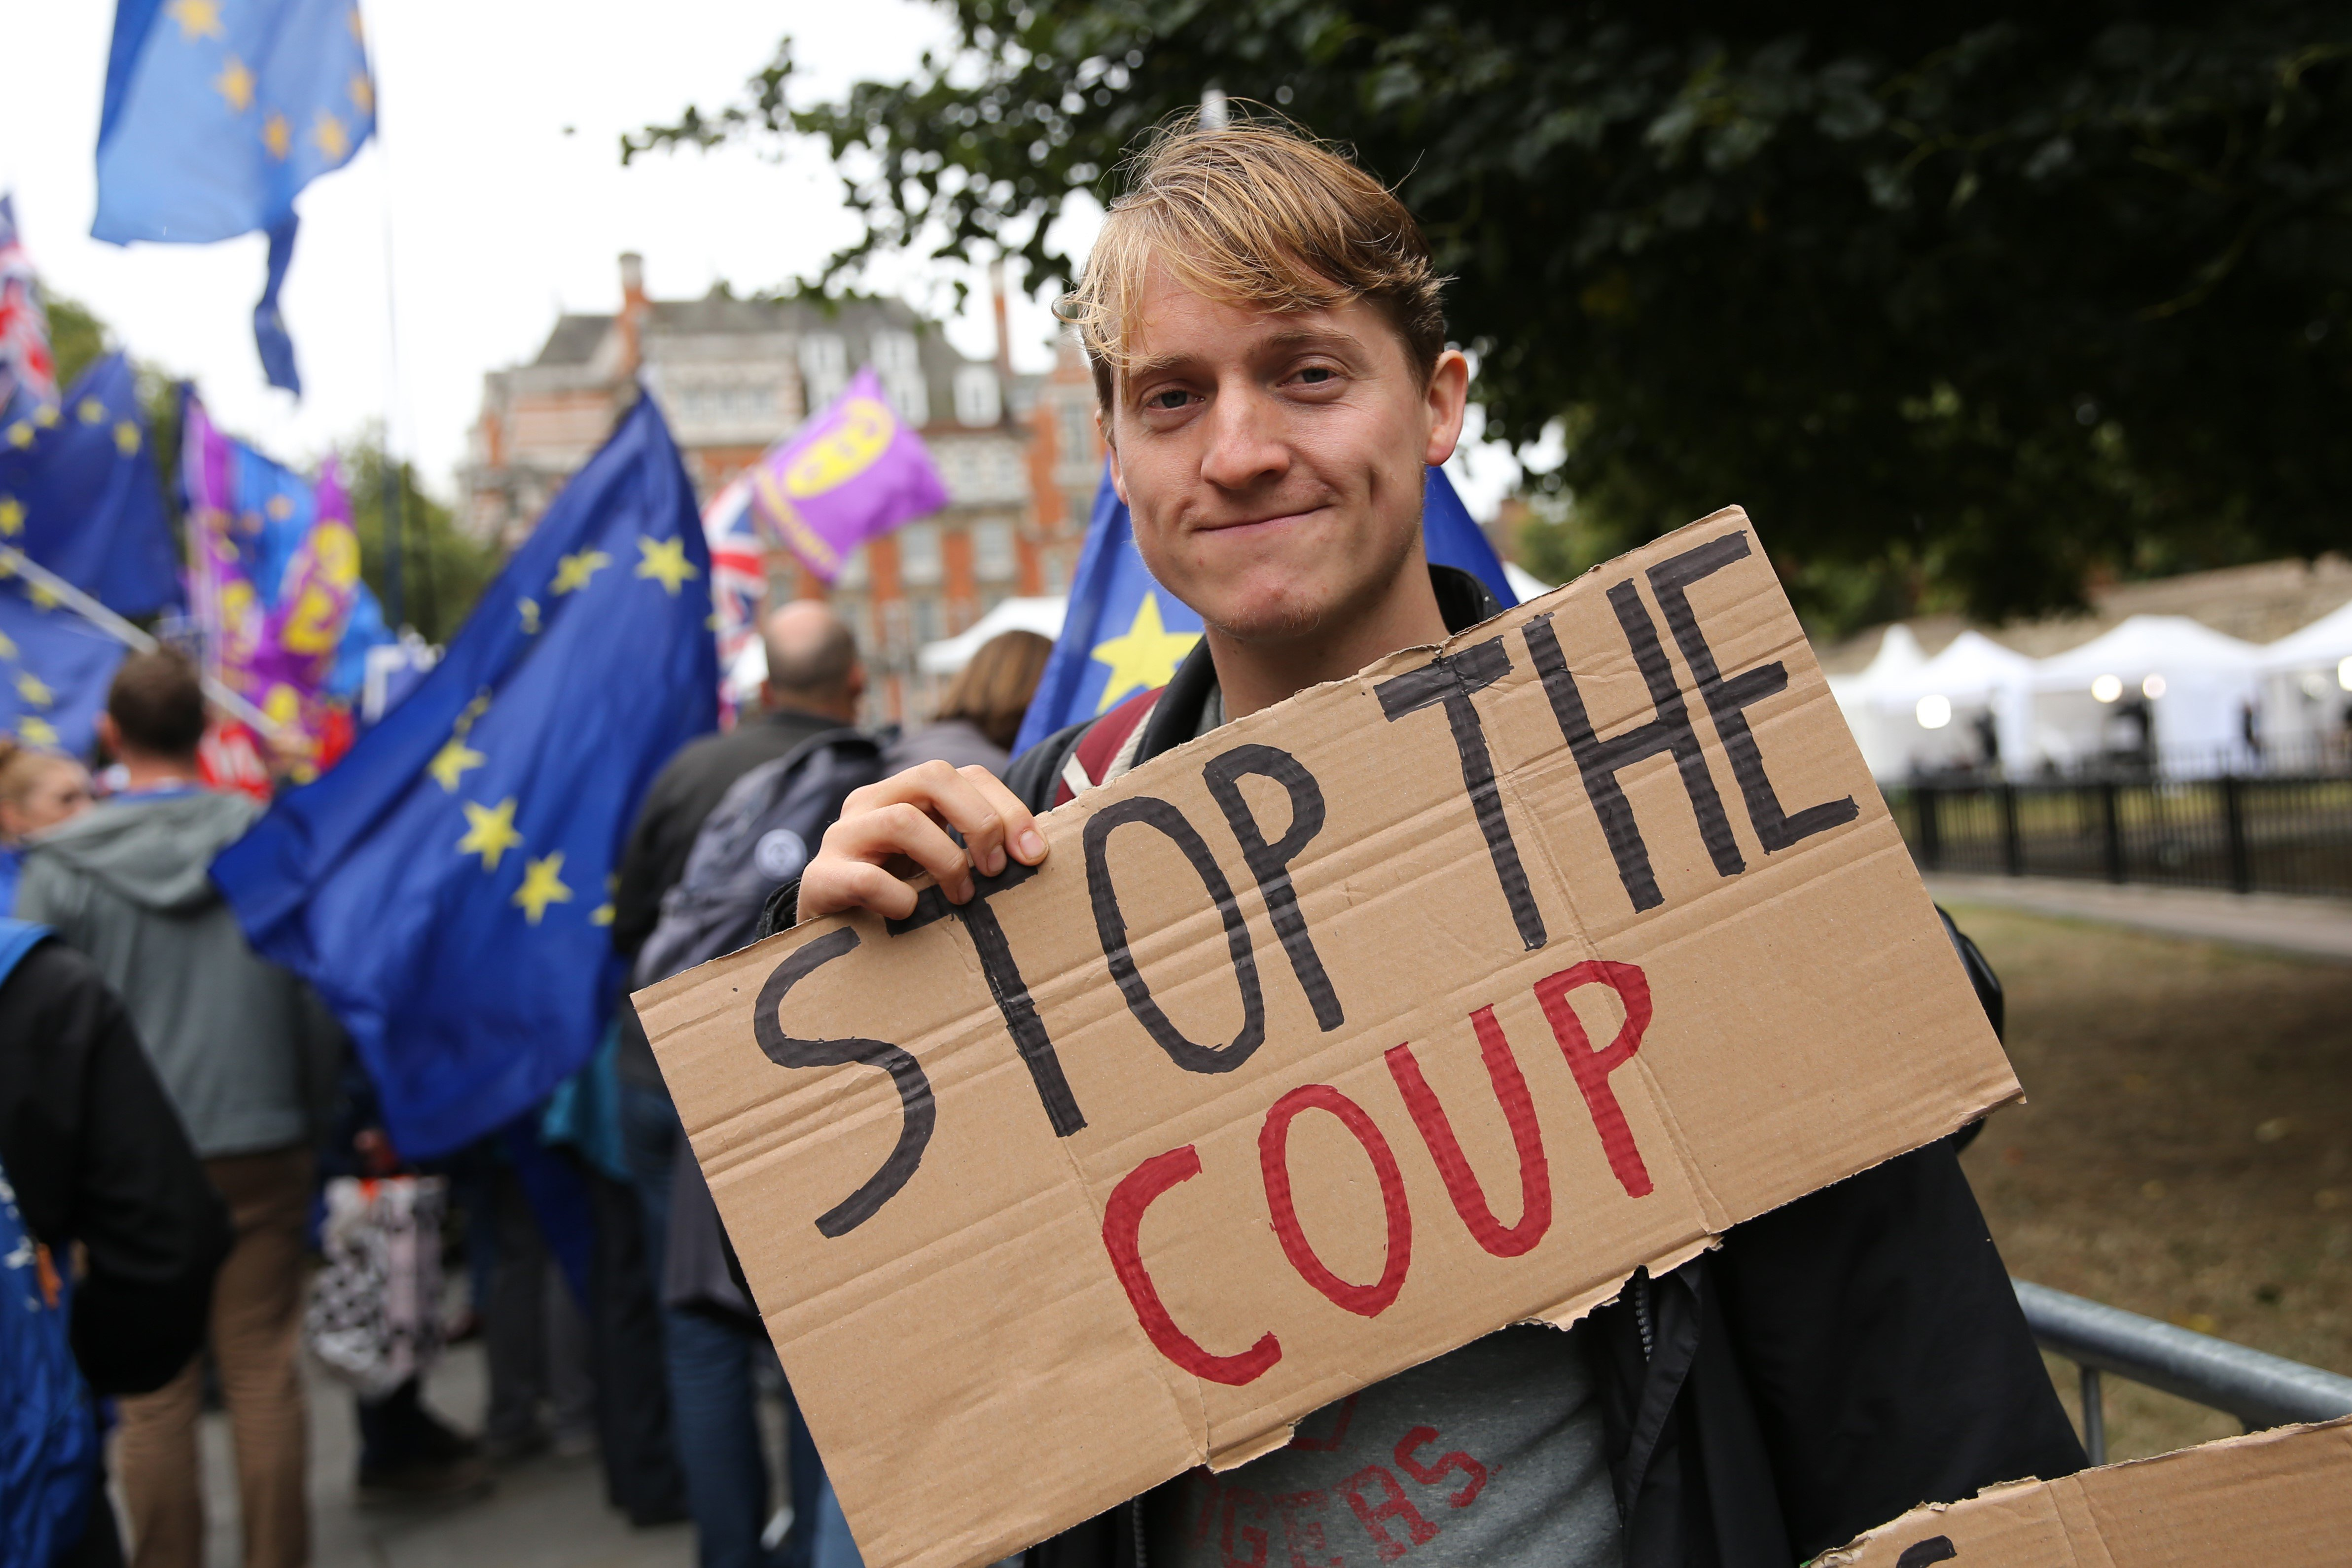 Anti-Brexit protesters stand protest outside the Houses of Parliament in London on September 9, 2019